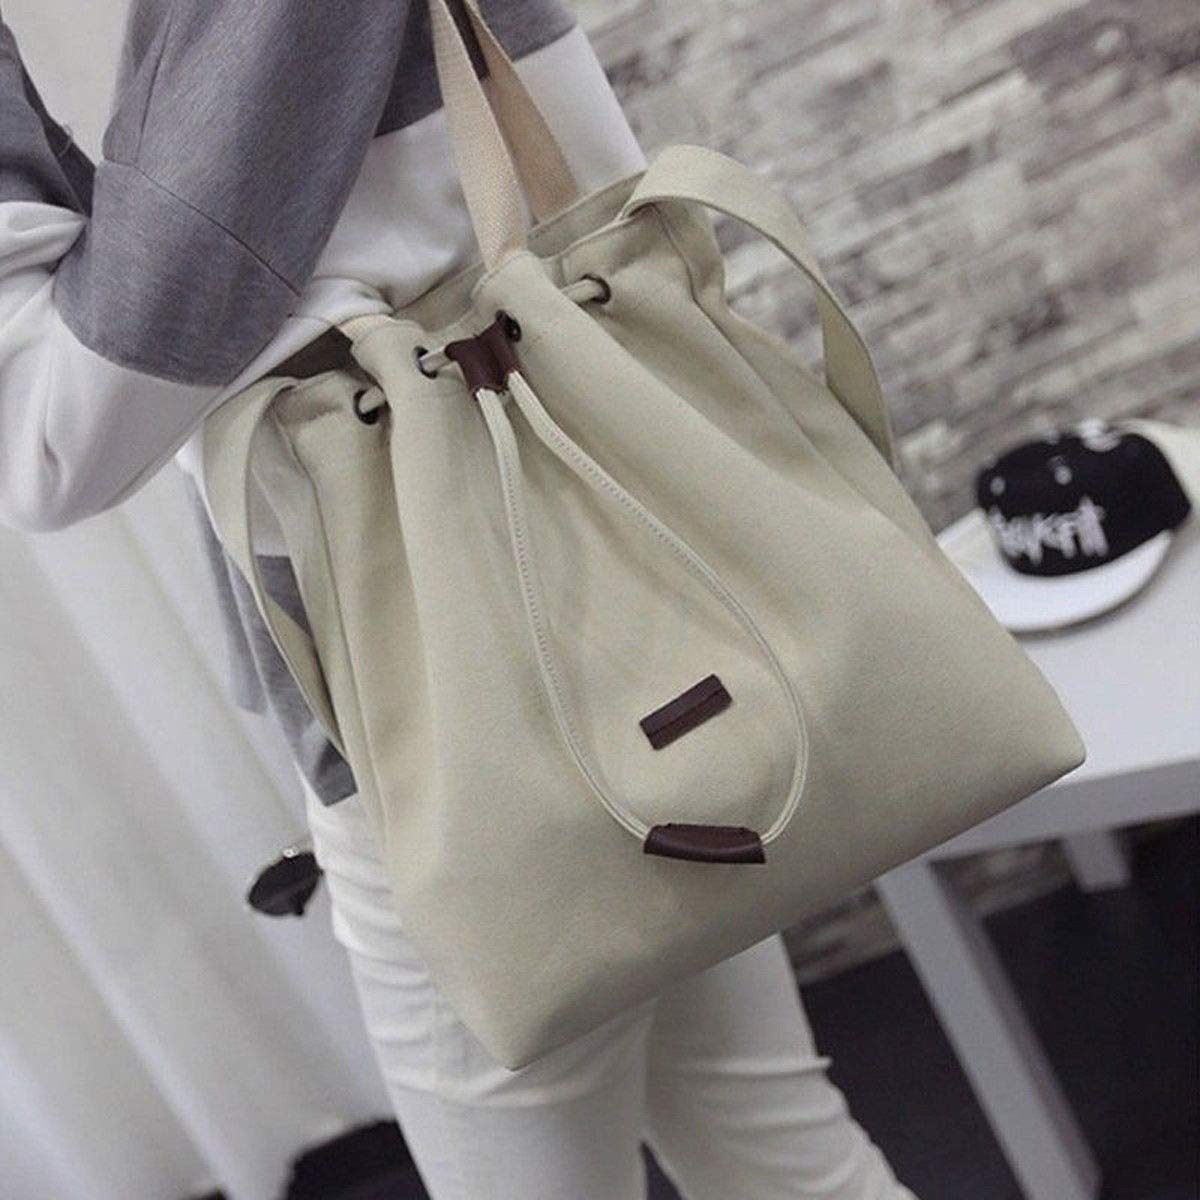 White Women Lady Shoulder Bags Canvas Messenger Hobo Satchel Tote Handbag #SENH